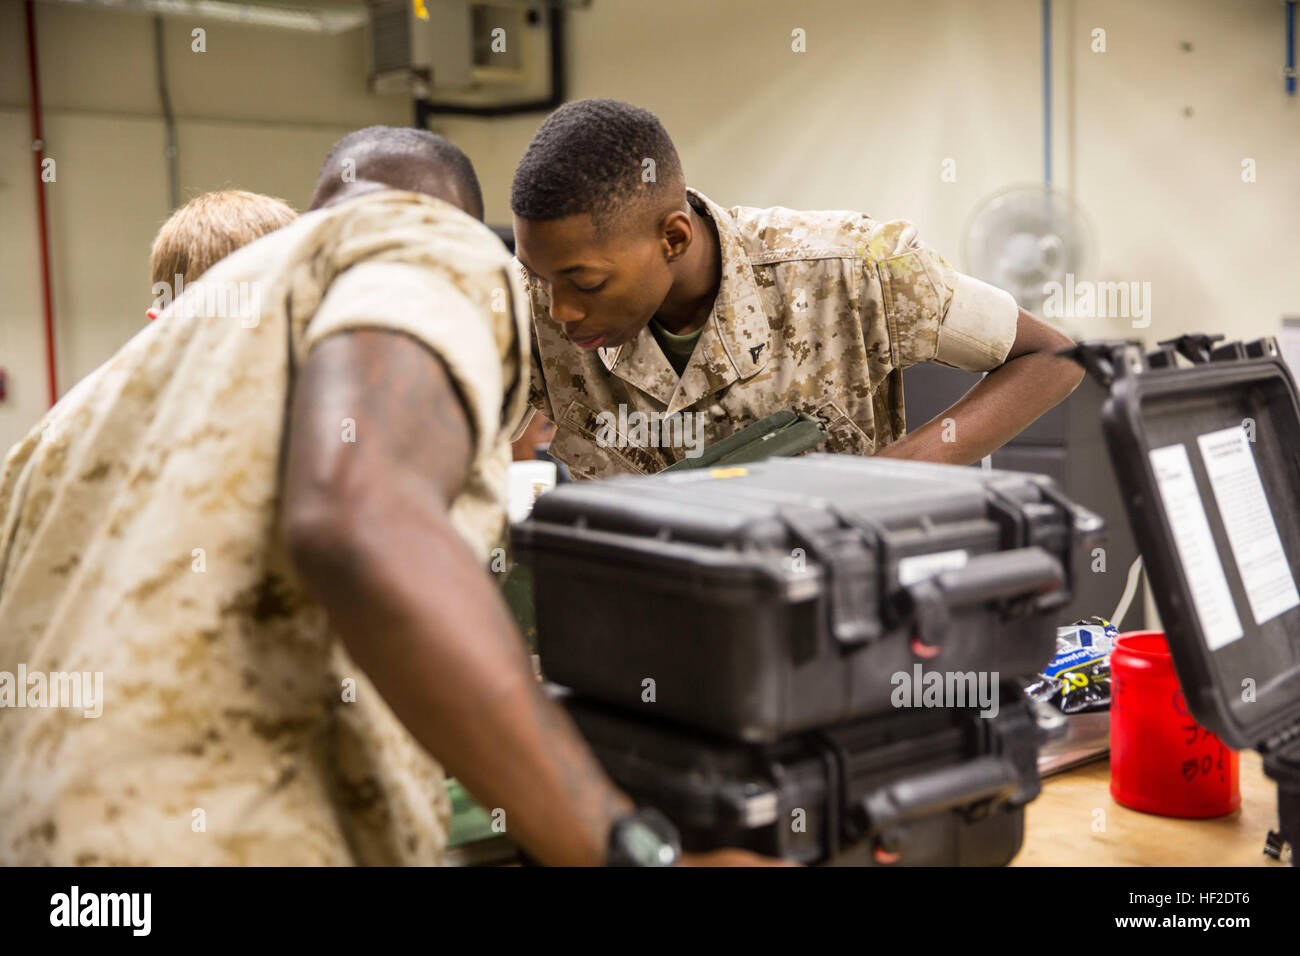 lance cpl james williams a decatur ga native and warehouse lance cpl james williams a decatur ga native and warehouse clerk sp magtf africa 14 conducts a gear inspection a team leader prior to issuing